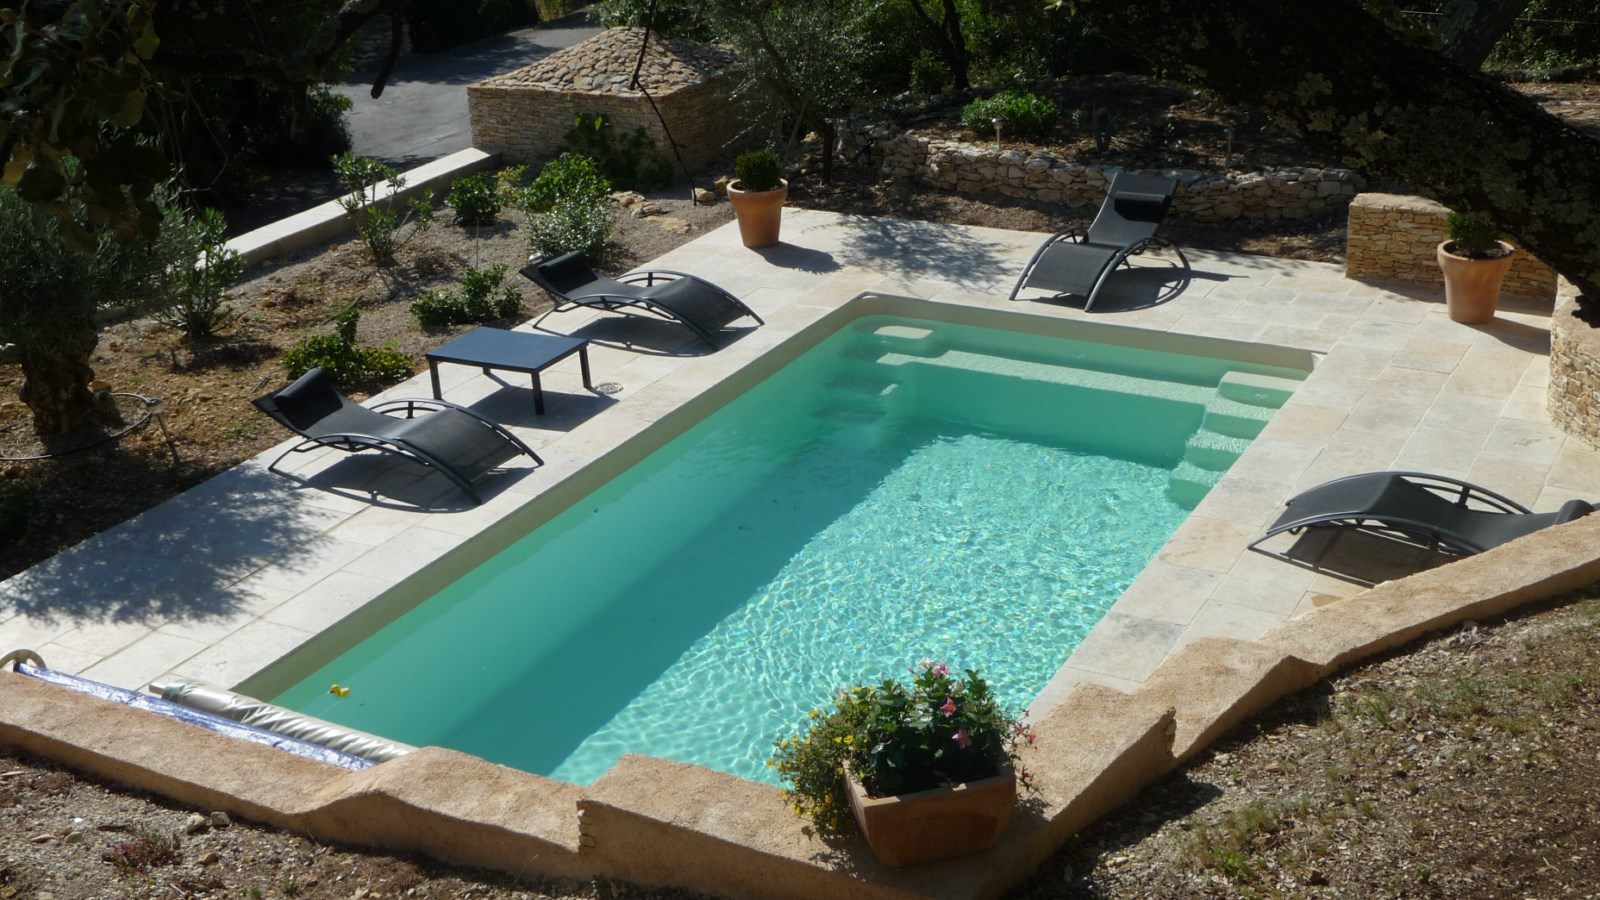 Plus de 80 concesionnaires en france piscine polyester for Provence piscine polyester